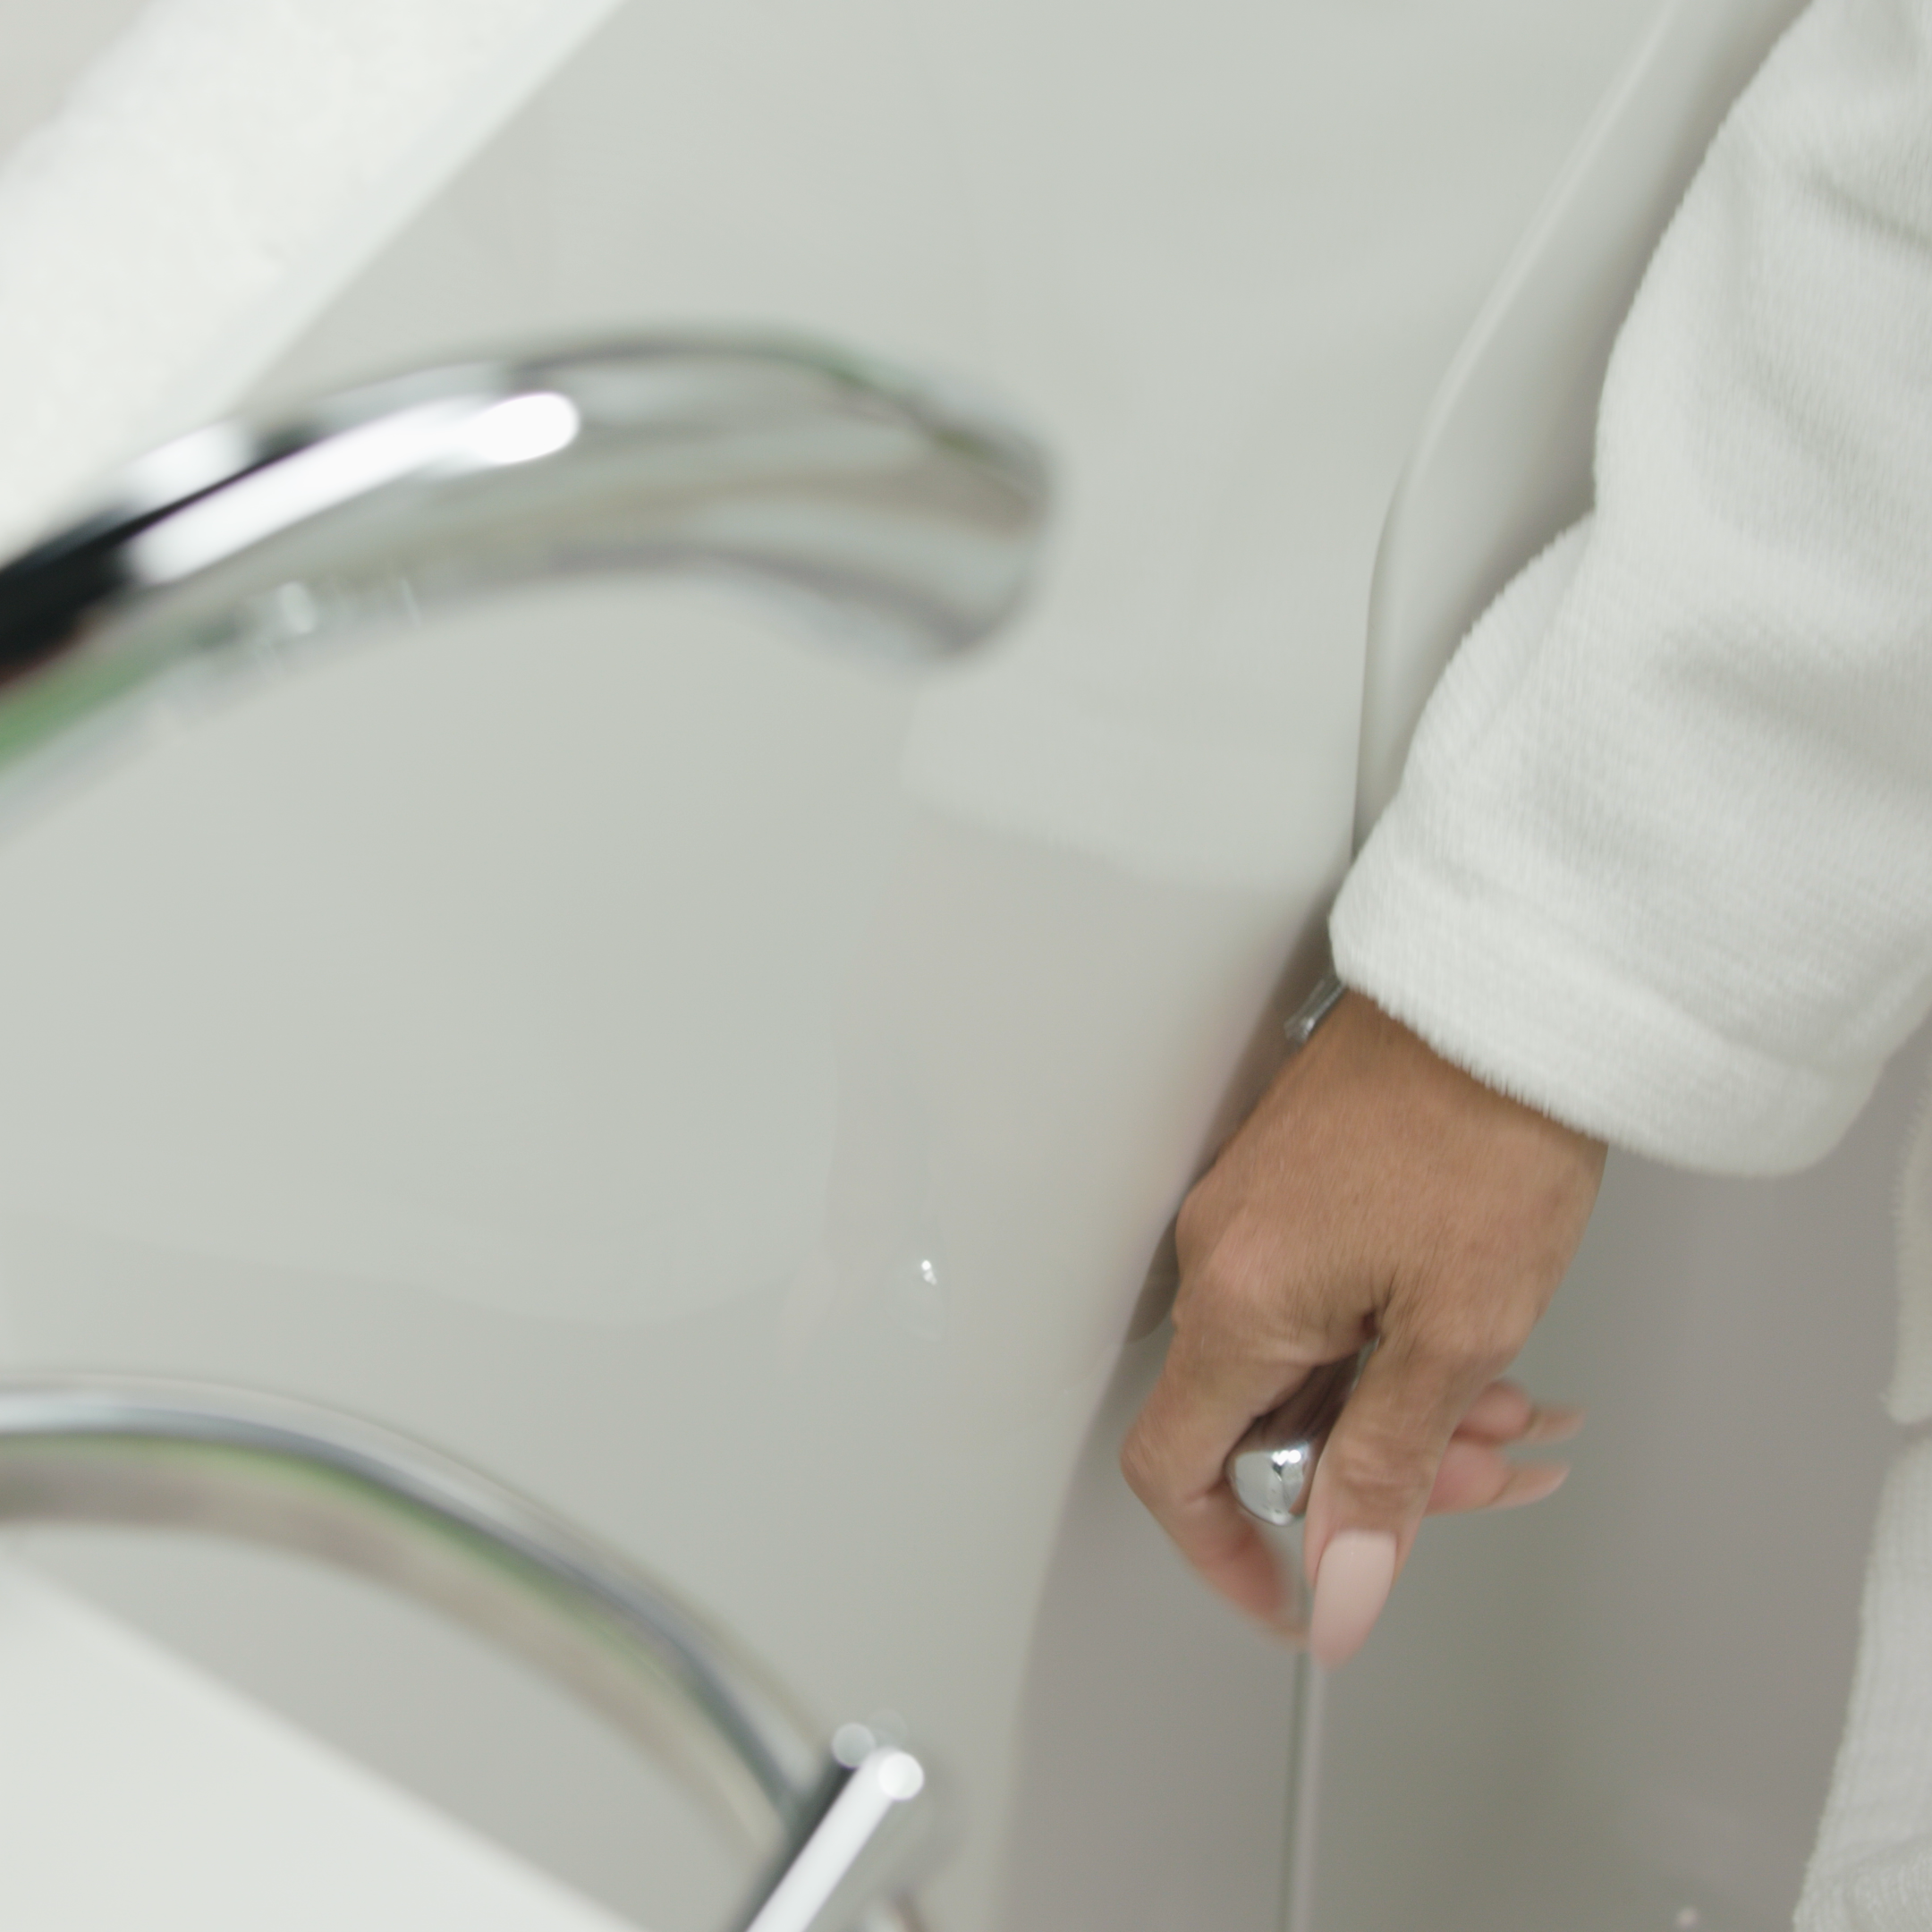 A tap being turned by an elderly woman in a walk-in tub